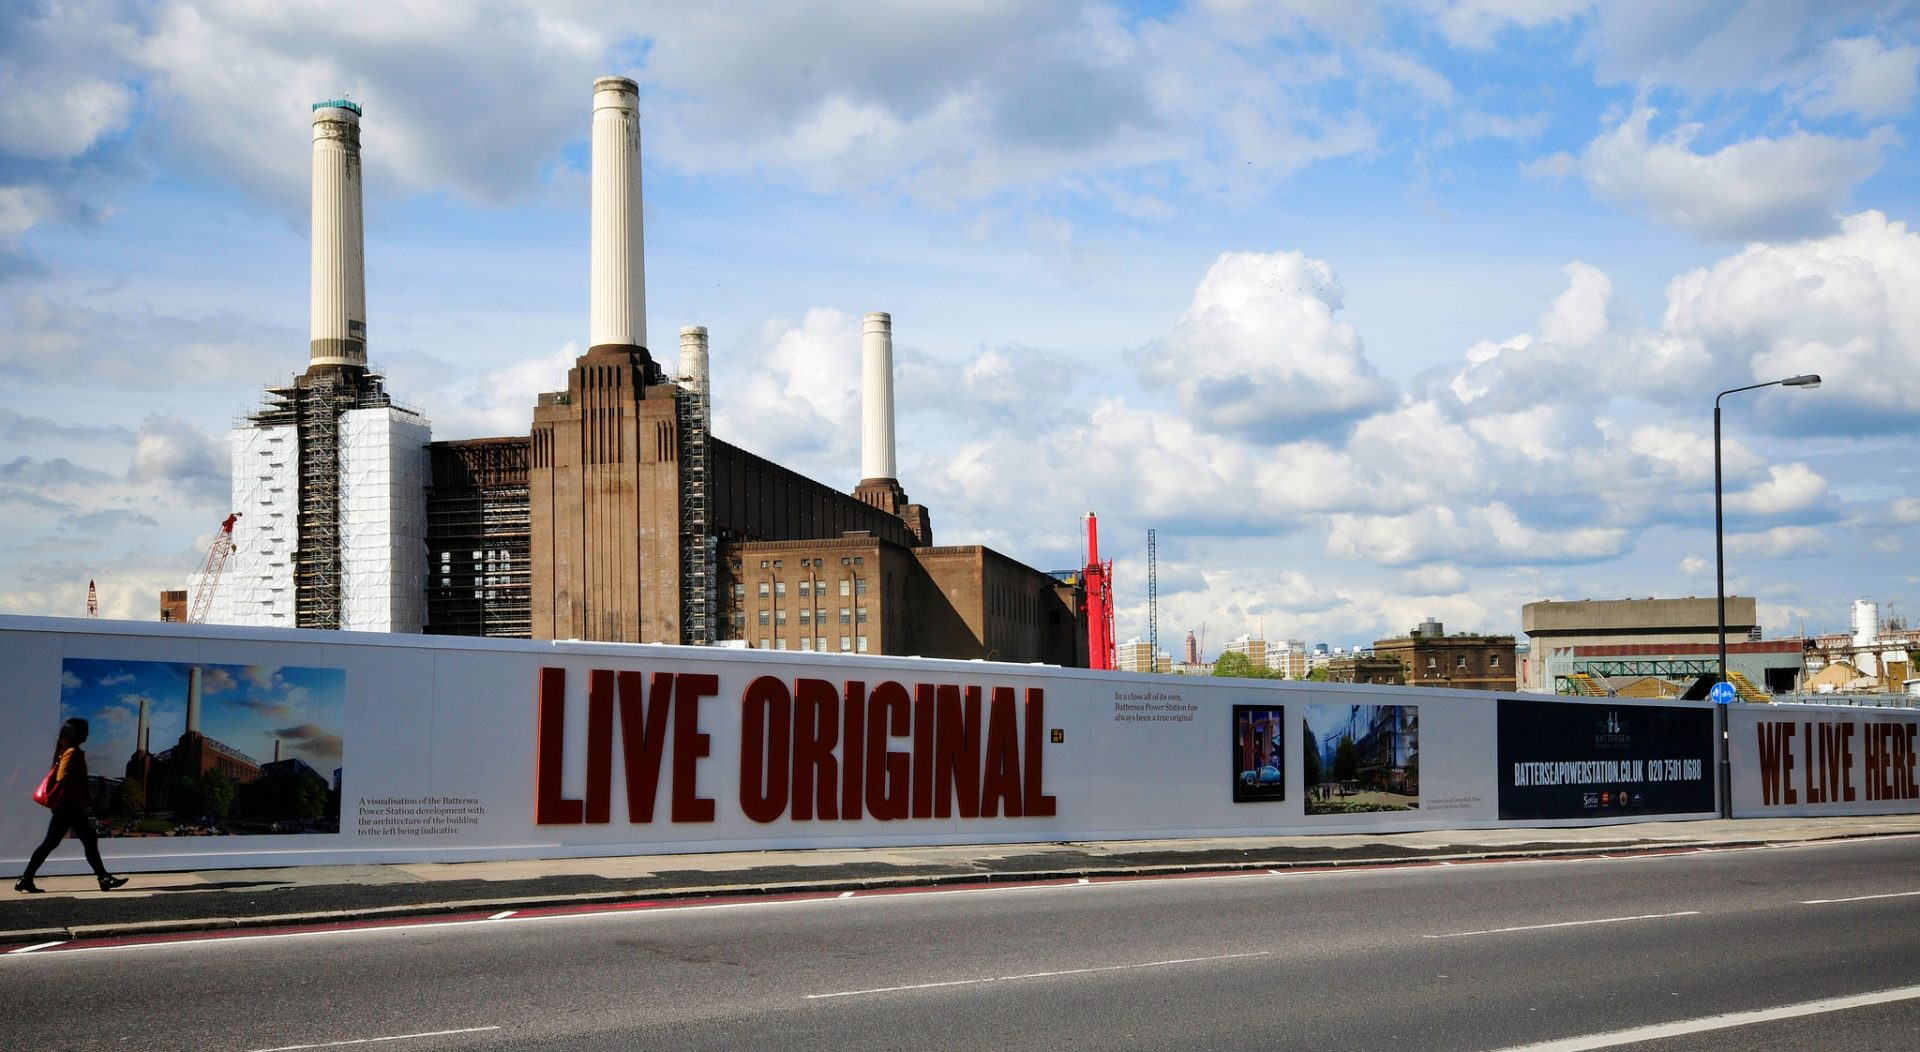 Live Original in 3D letters on a hoarding by Battersea Power Station, created and installed by Octink